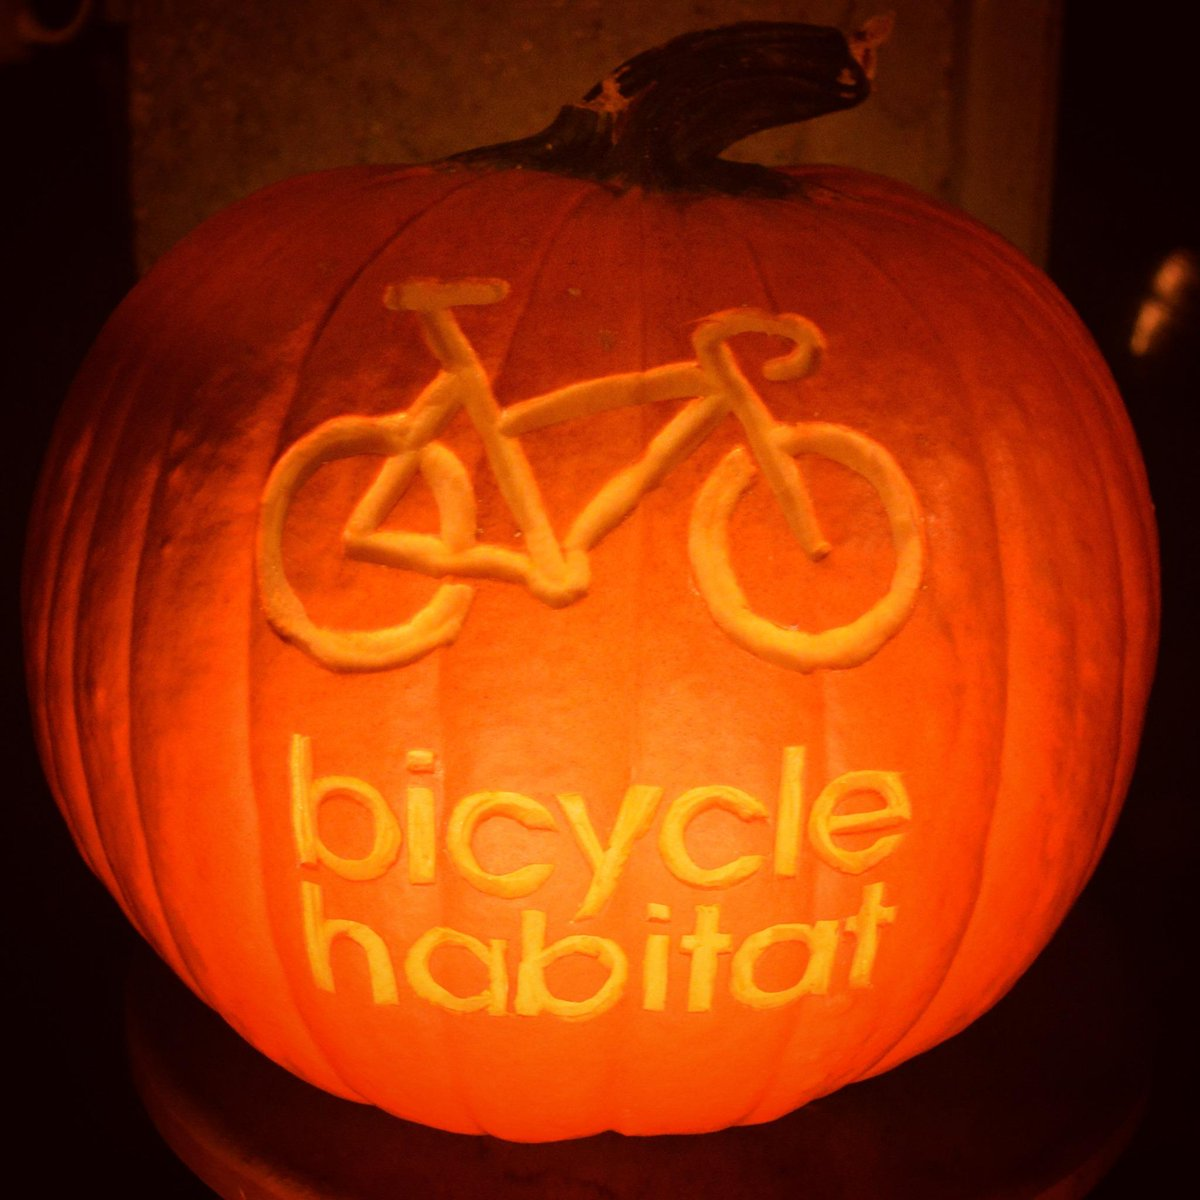 Happy Halloween from all of us at Bicycle Habitat! #bikenyc http://t.co/e9mE5mrD9Q